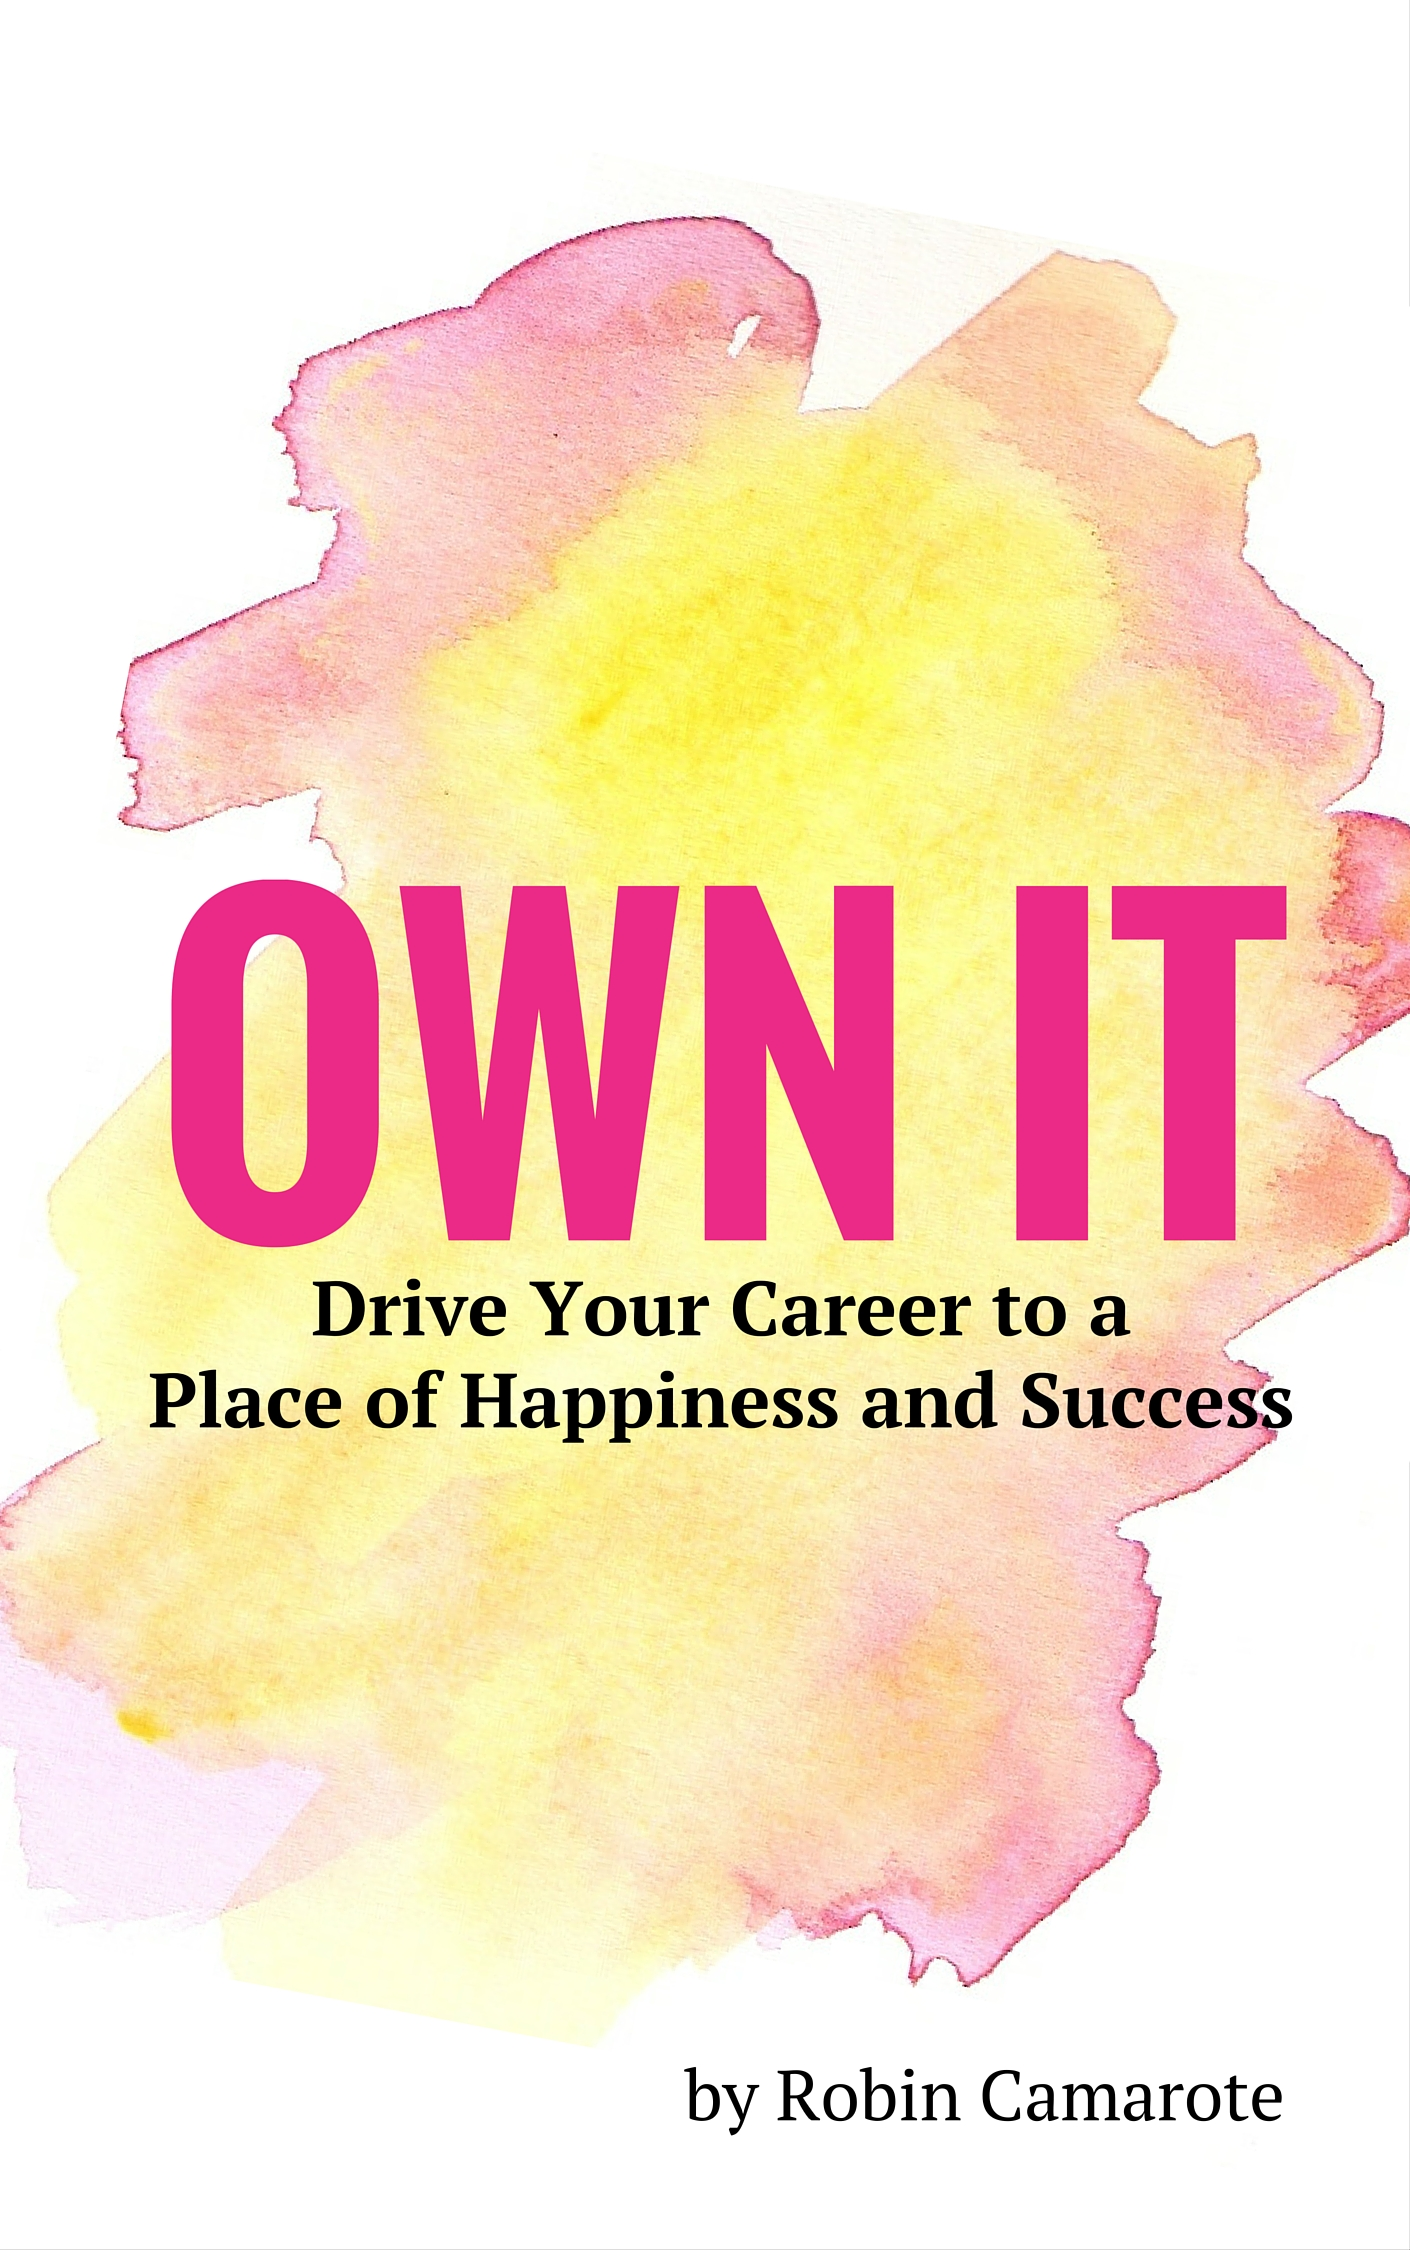 Own It: Drive Your Career to a Place of Happiness and Success